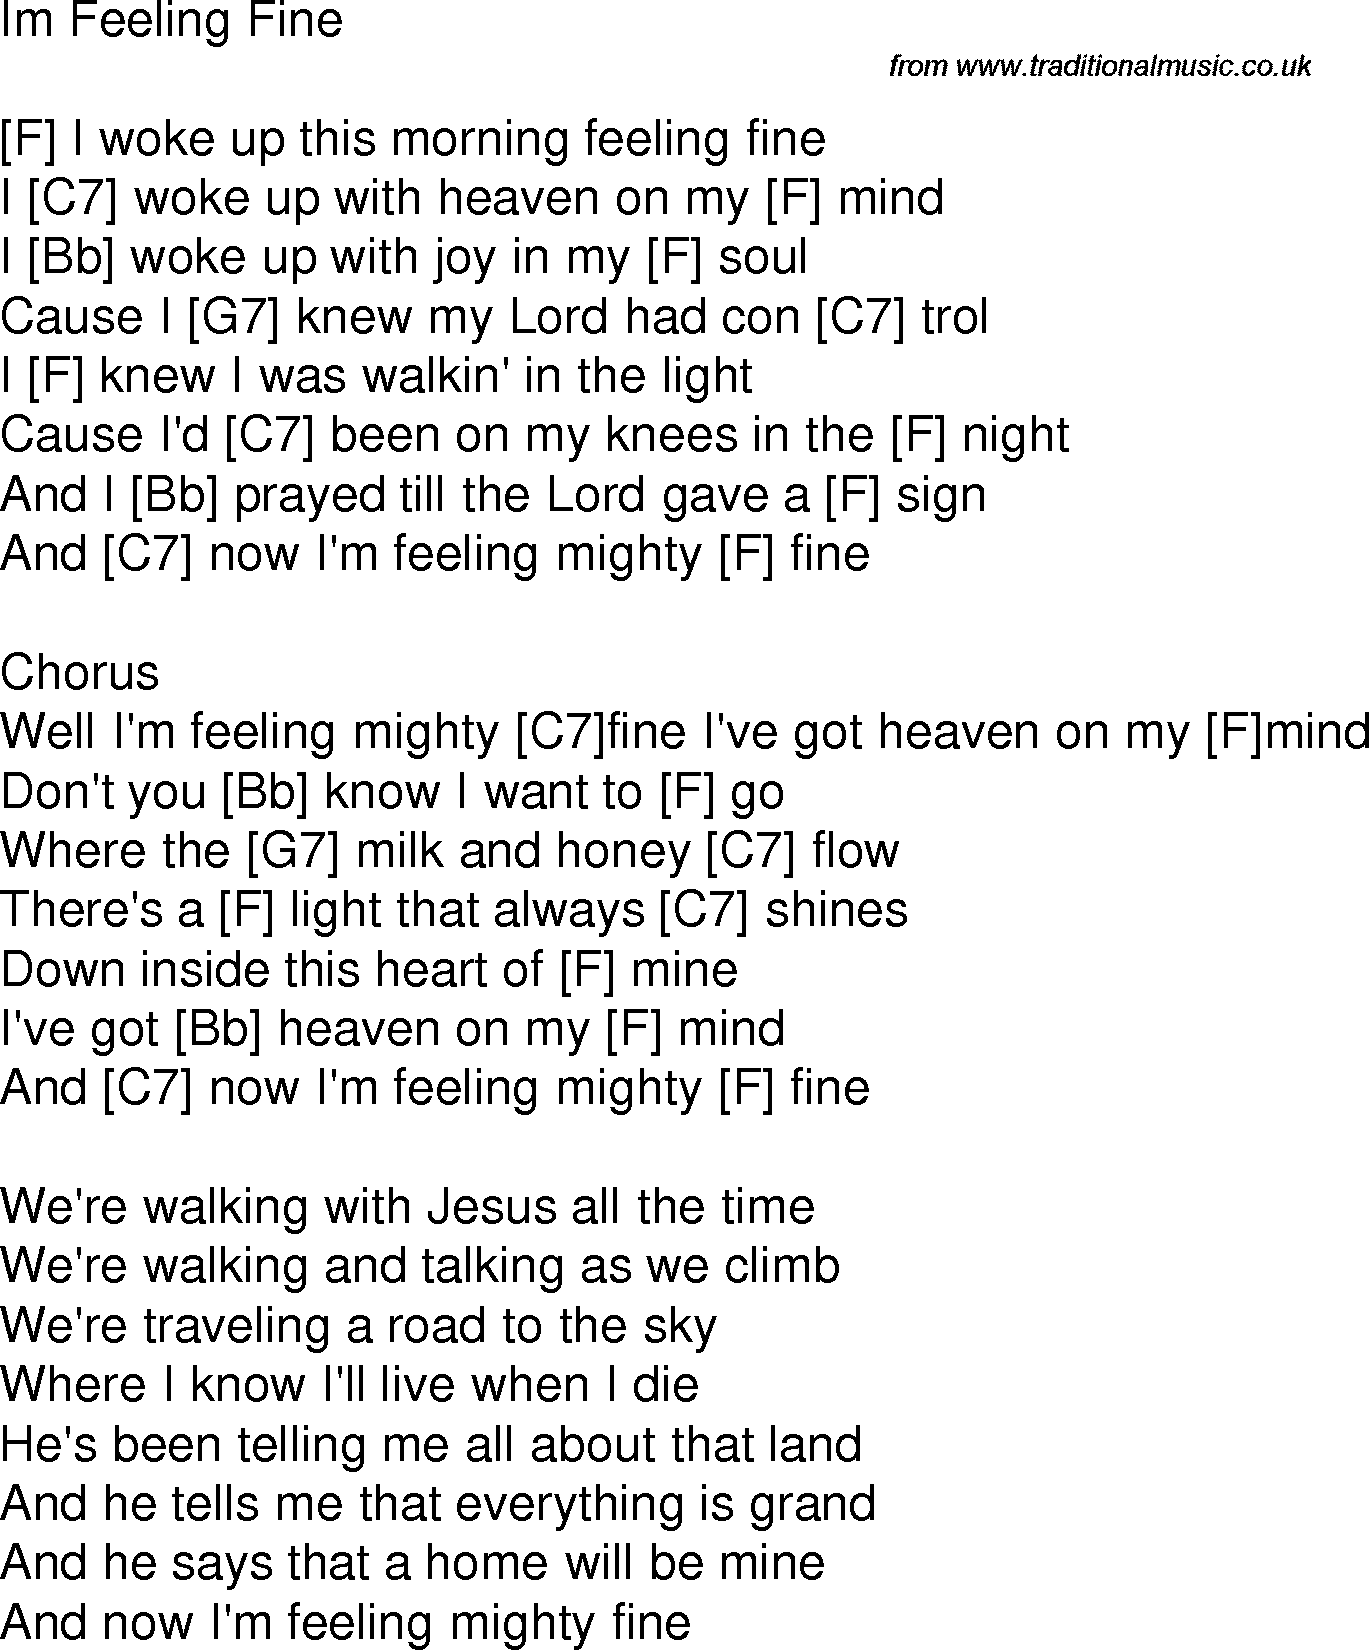 Old Time Song Lyrics With Guitar Chords For Im Feeling Fine F